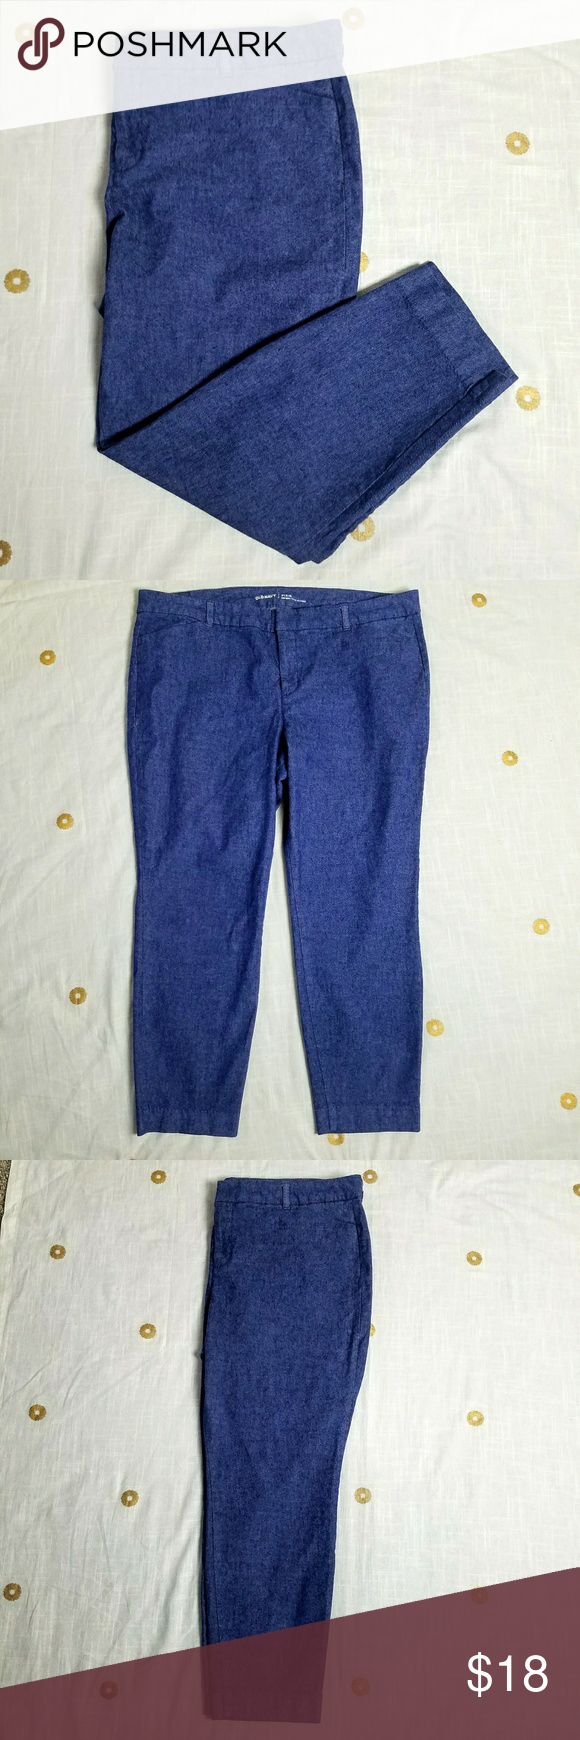 a08dfa07b37e7 Plus Size Old Navy Pixie Mid-Rise Linen Blend Pant Old Navy Pixie Mid-